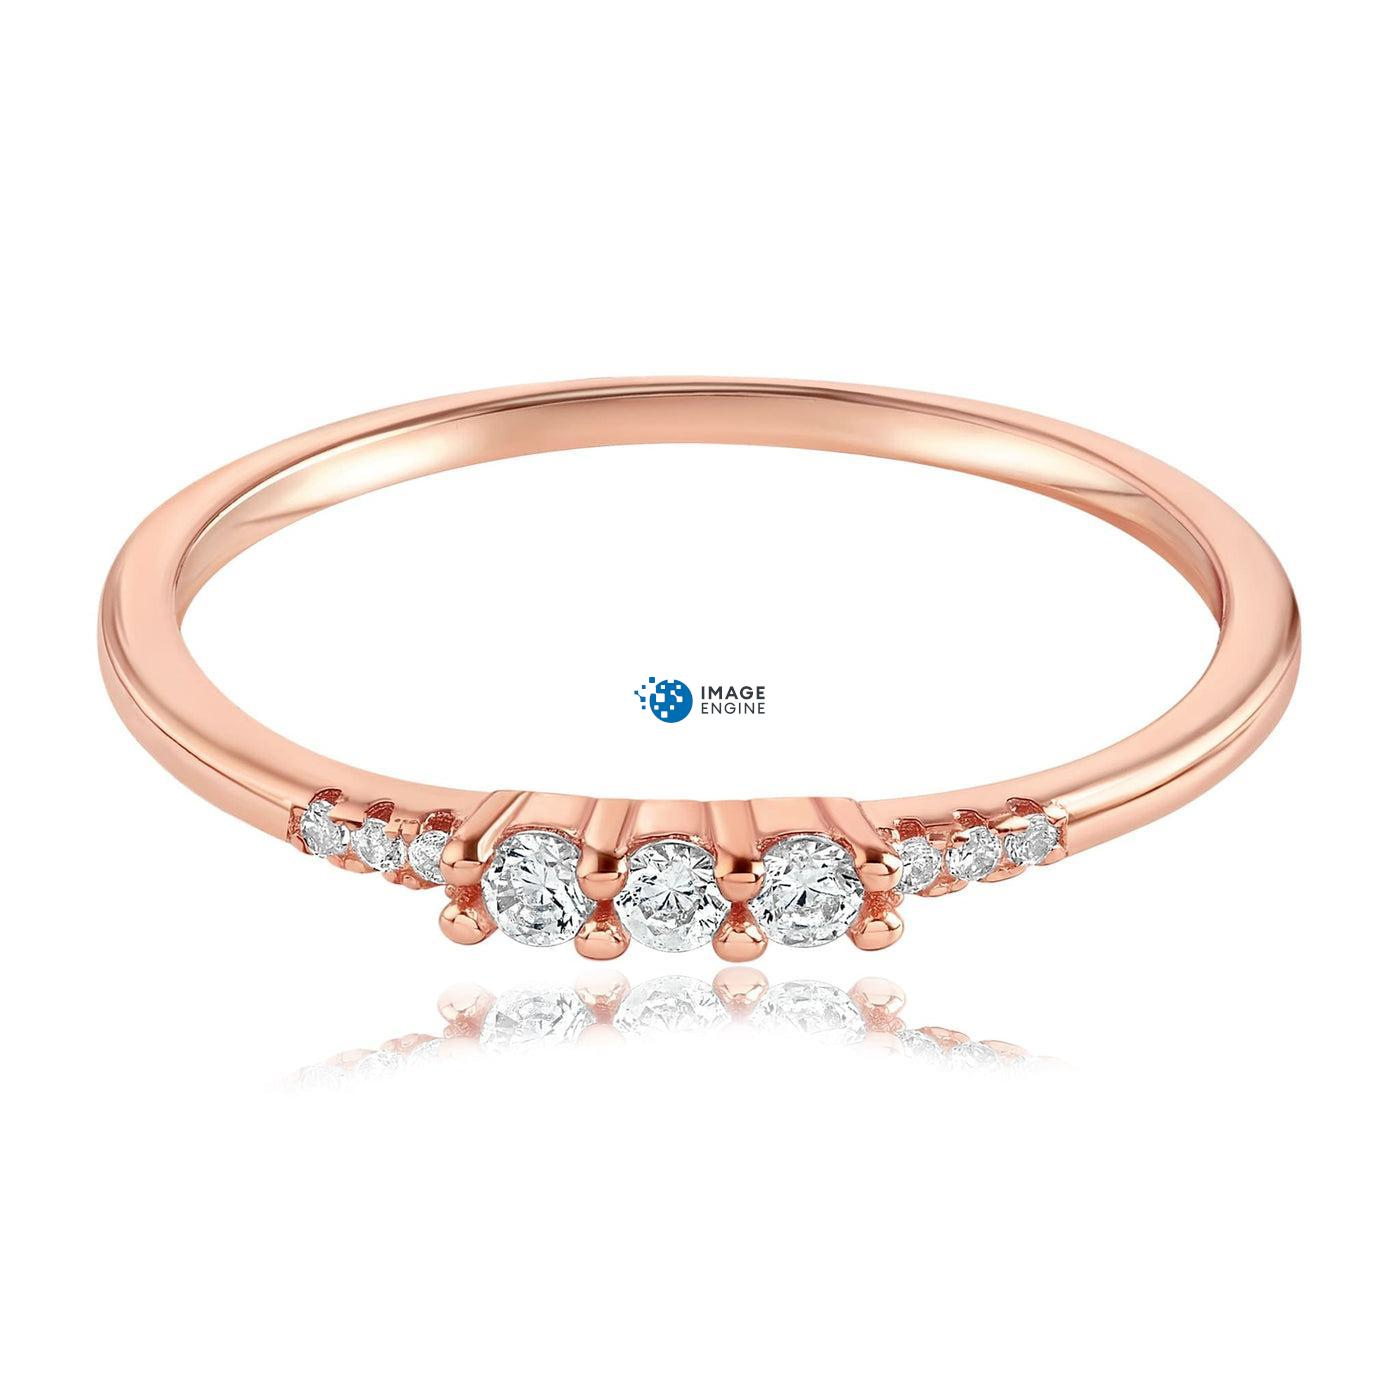 Emie Ring - Three Quarter View - 18K Rose Gold Vermeil